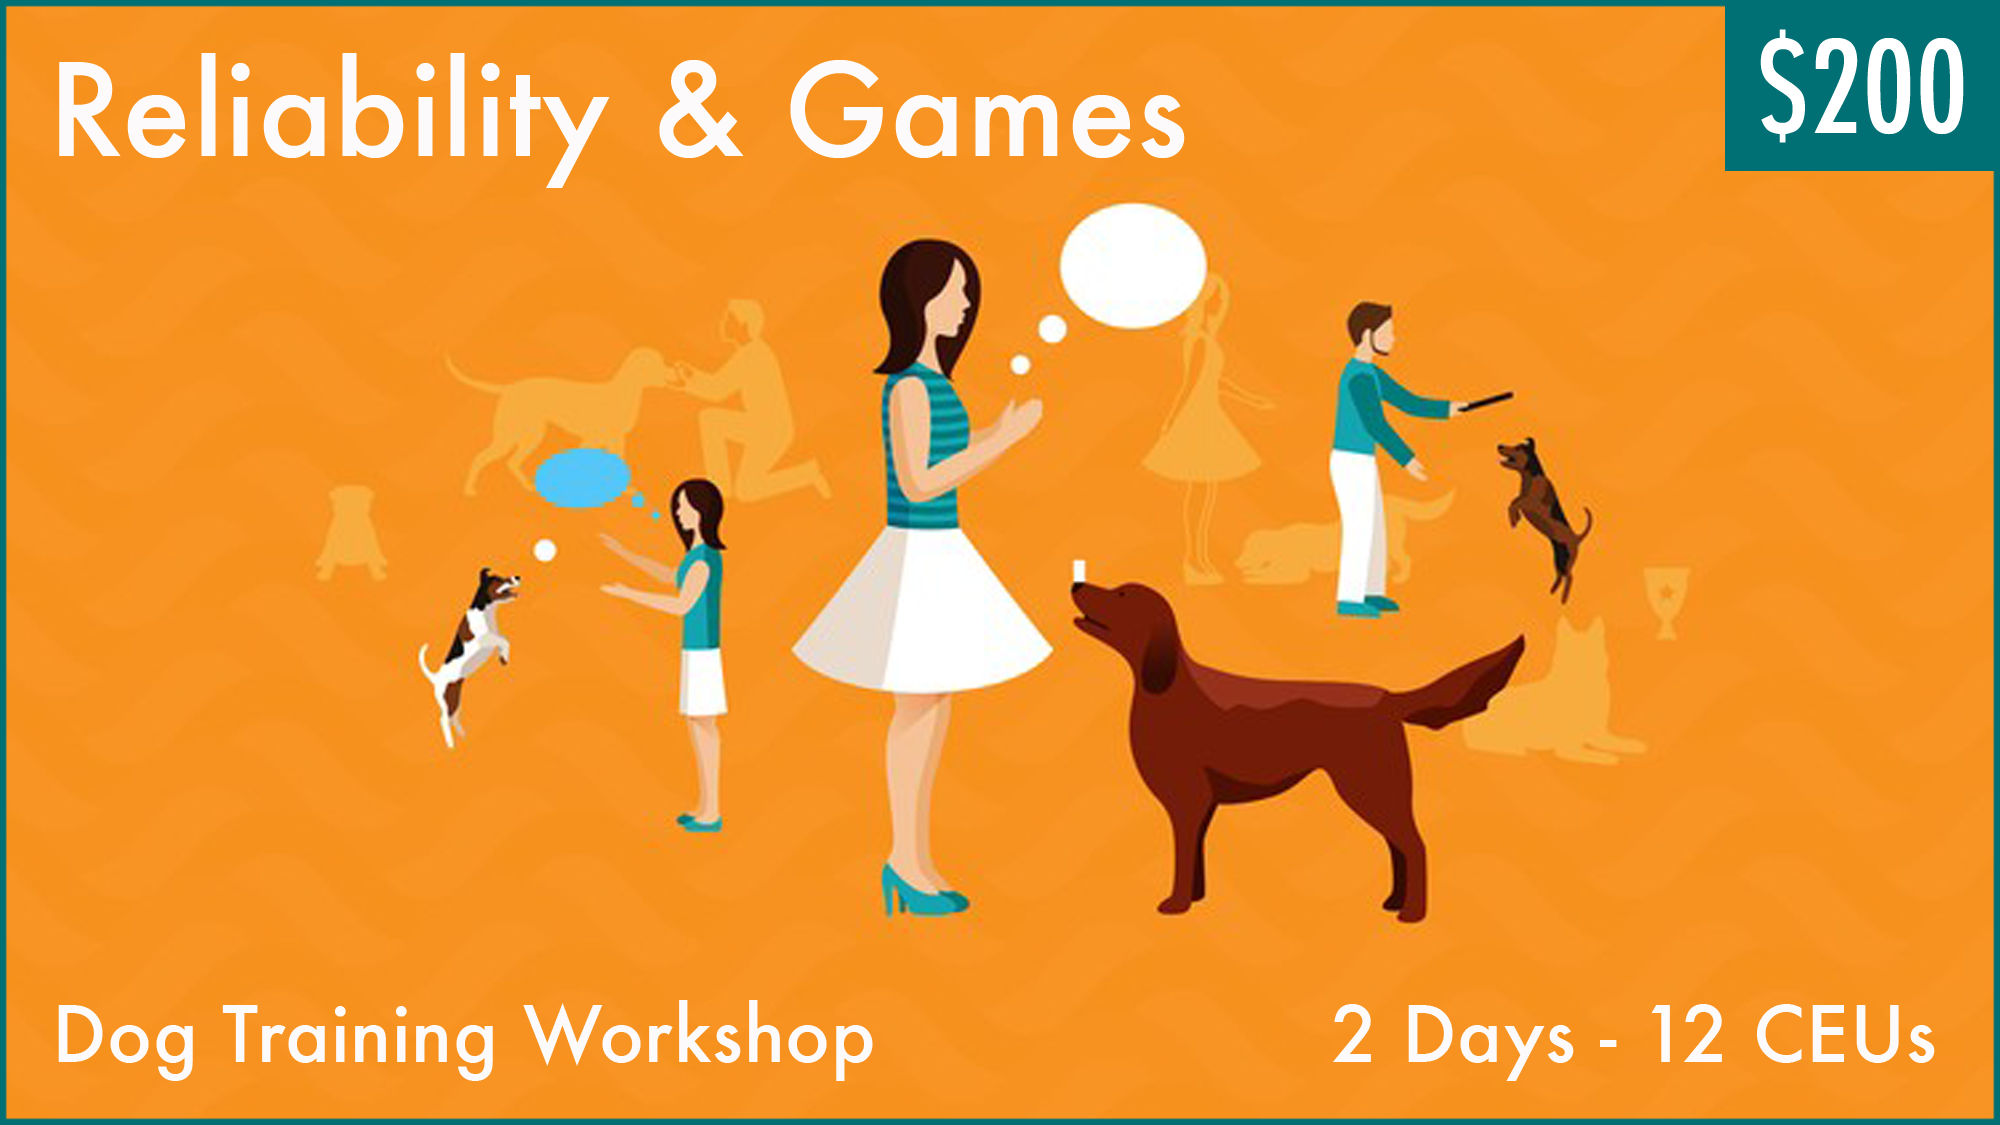 Dog training workshop by Dr. Ian Dunbar. Training games are great for motivating owners and dogs alike. Learn to harness games to achieve rock-solid reliability.